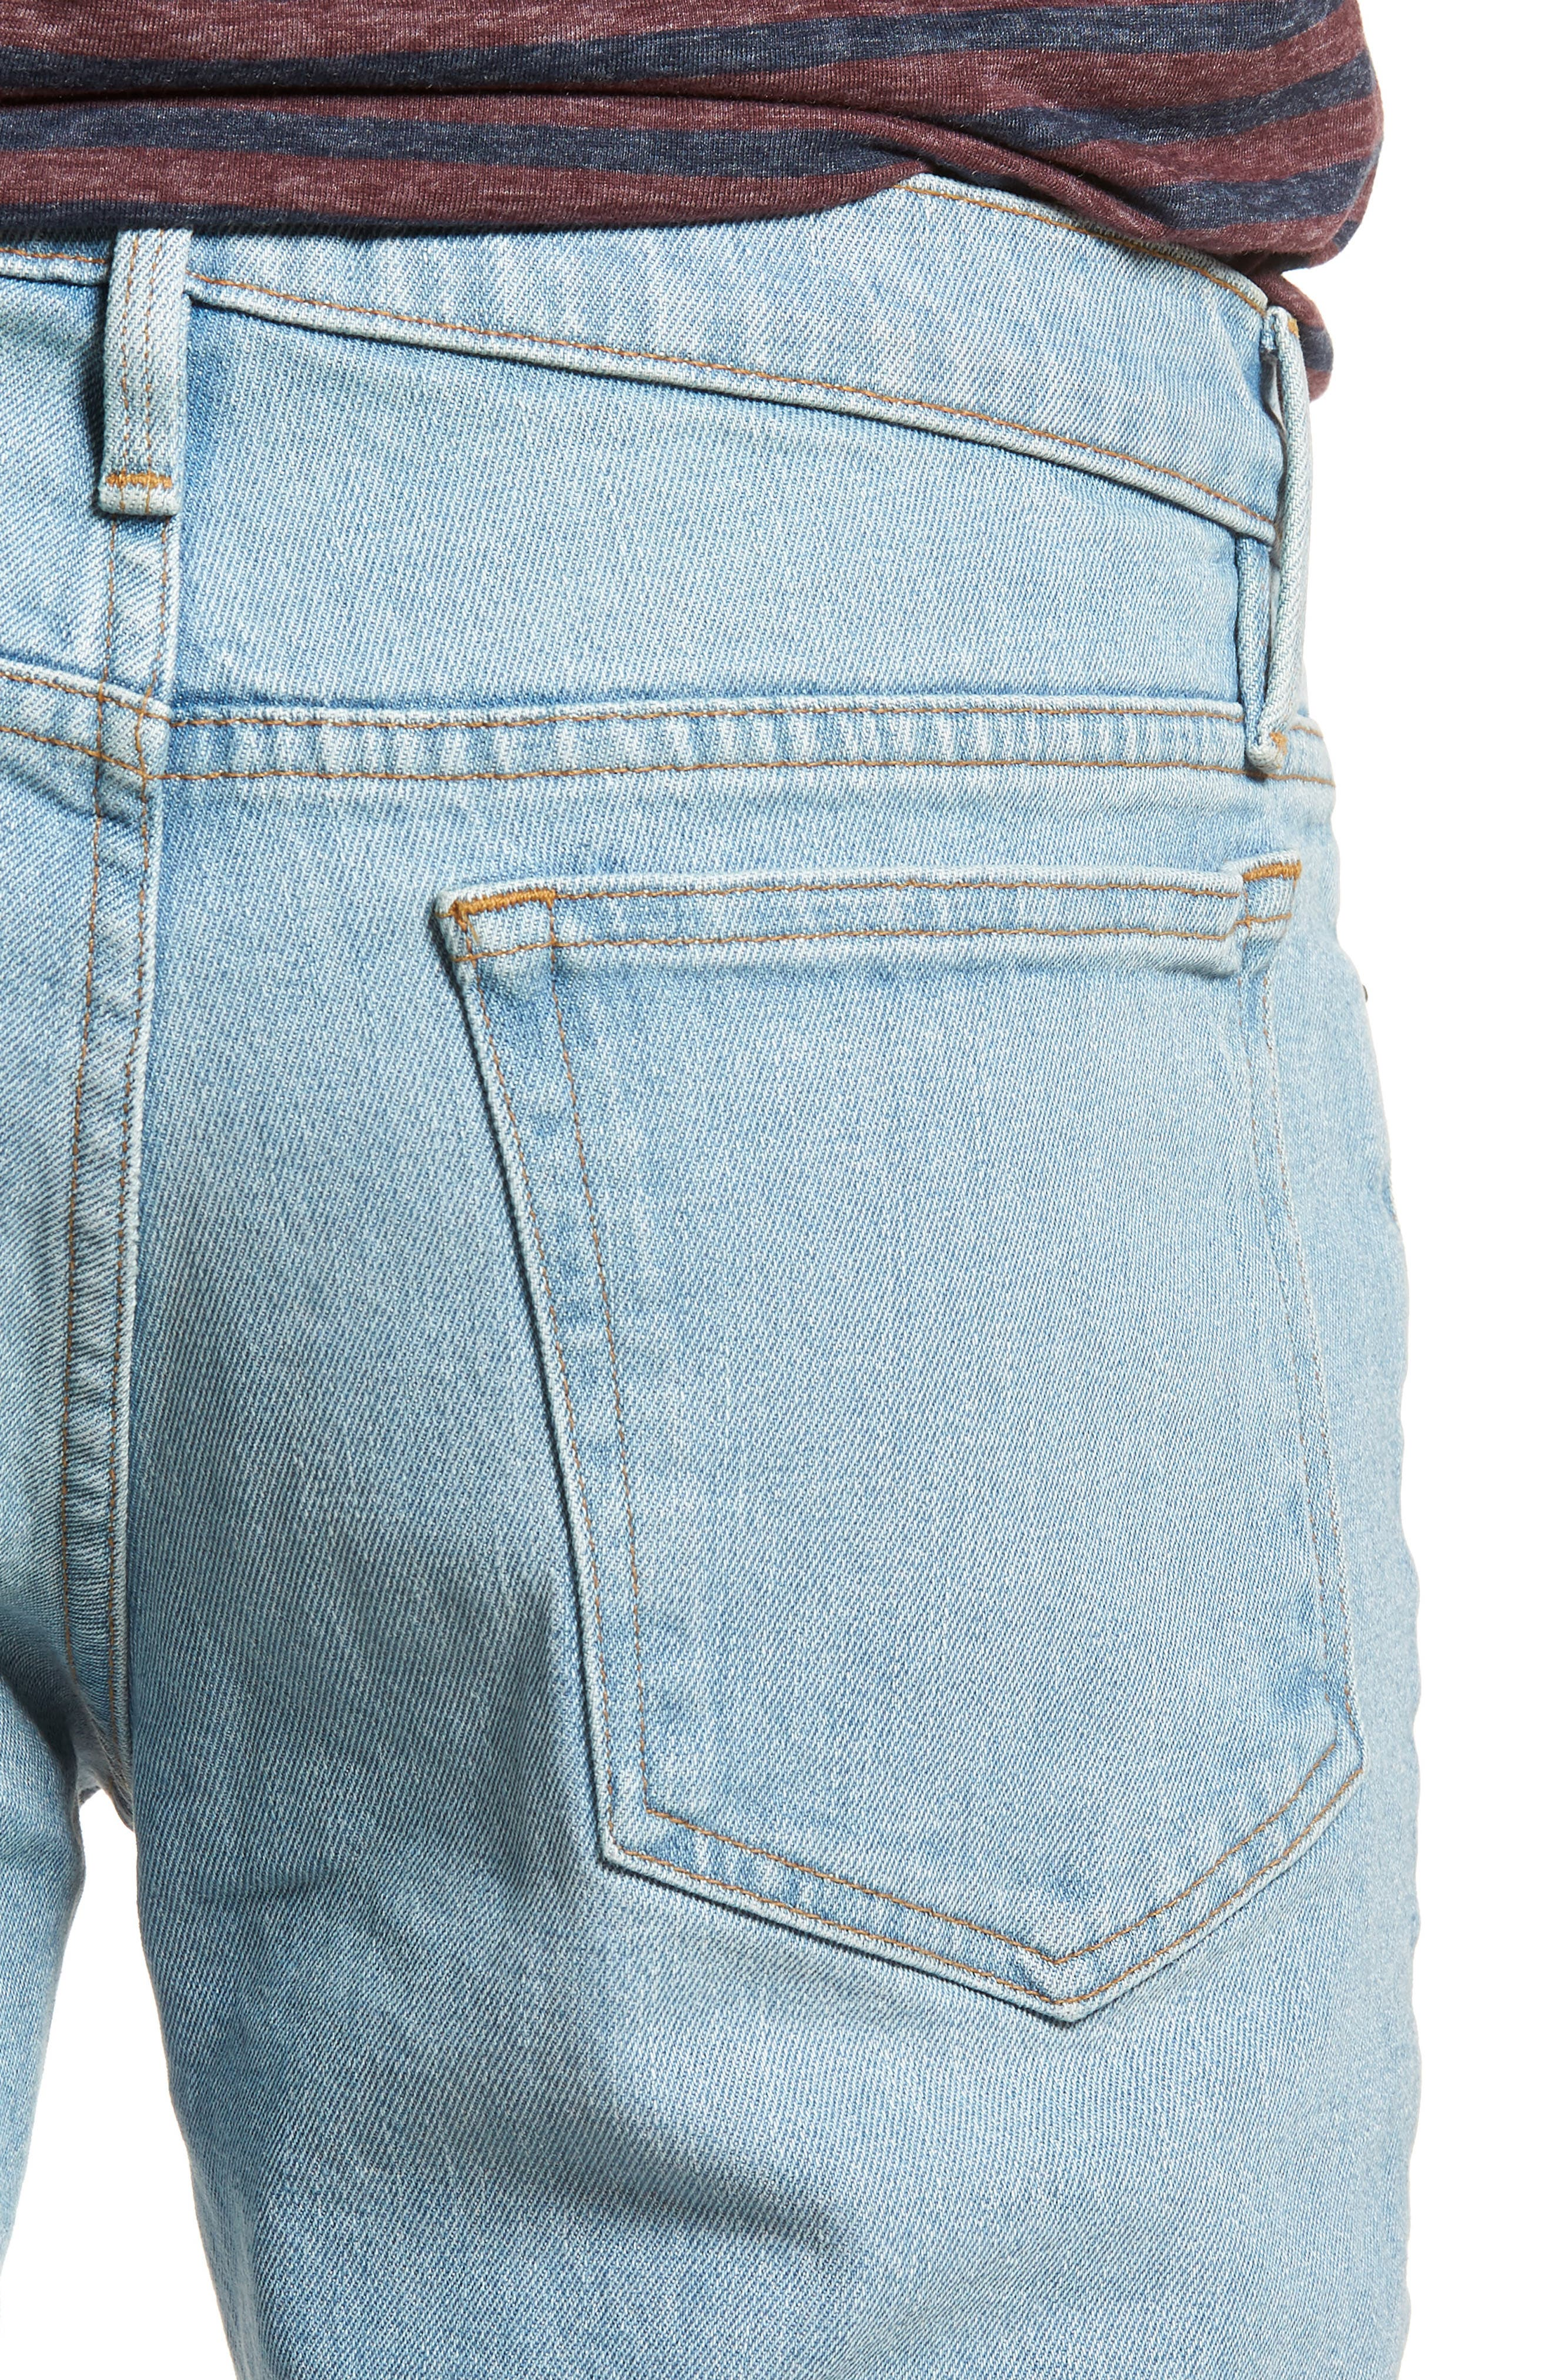 L'Homme Cutoff Denim Shorts,                             Alternate thumbnail 3, color,                             Crosby